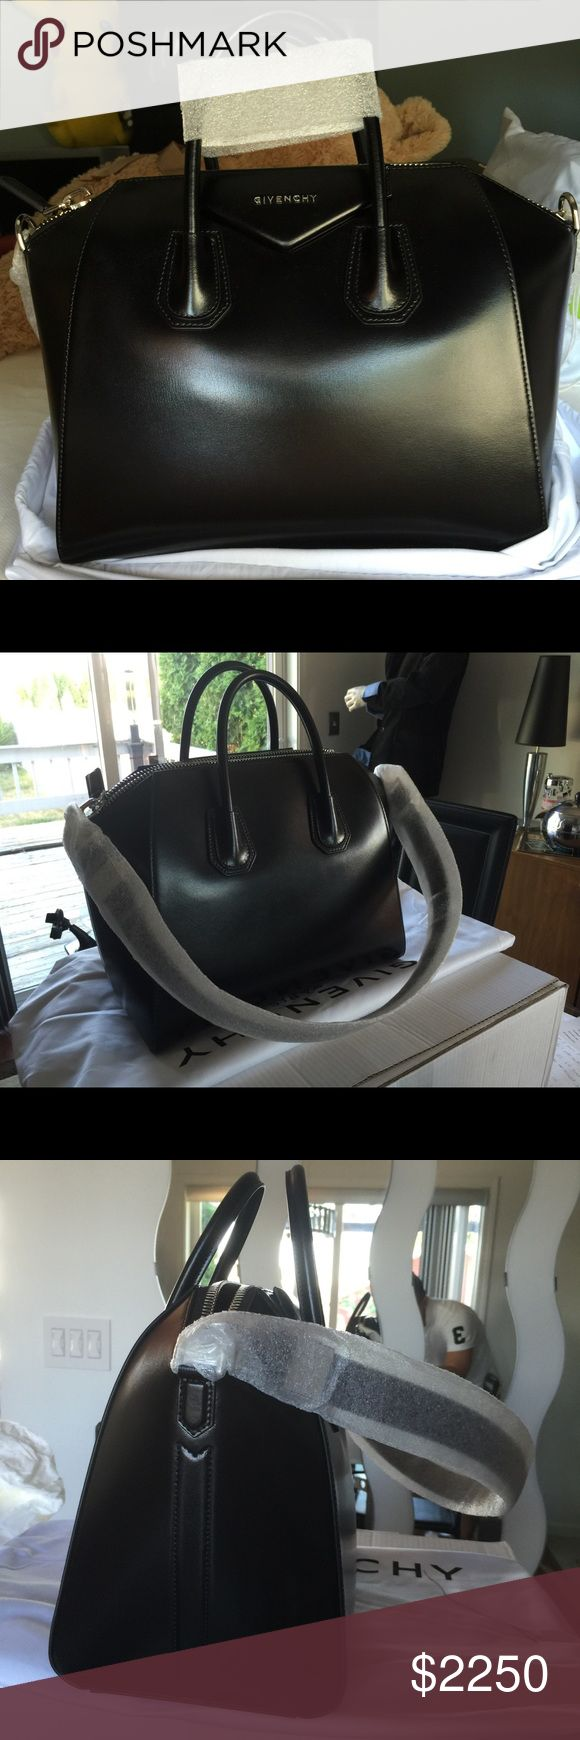 Givenchy Antigona smooth calf leather in Medium Brand new. Authentic bag. I still have everything Givenchy Bags